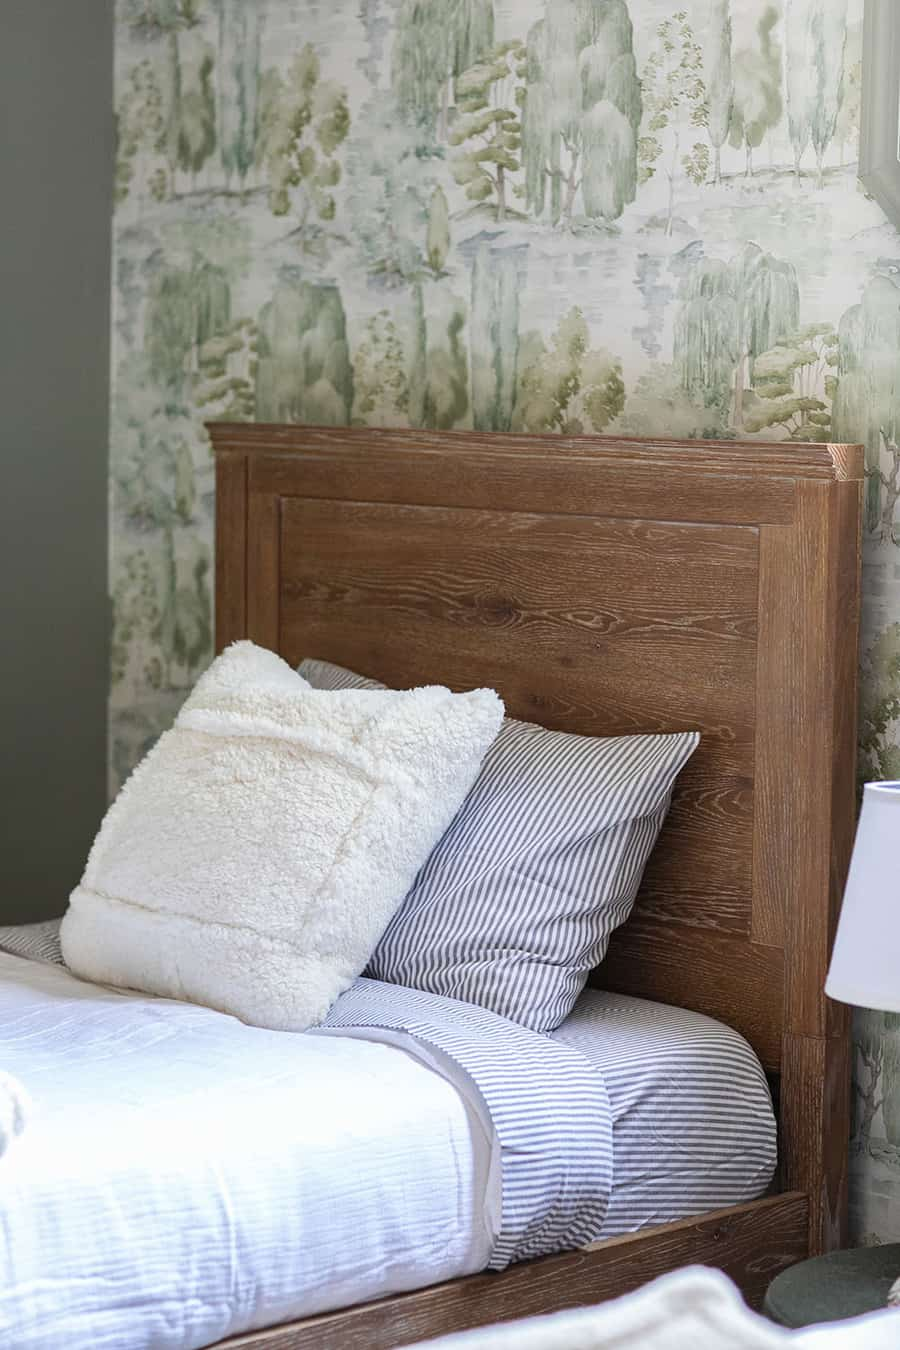 Wooden bed and bedding from Pottery Barn